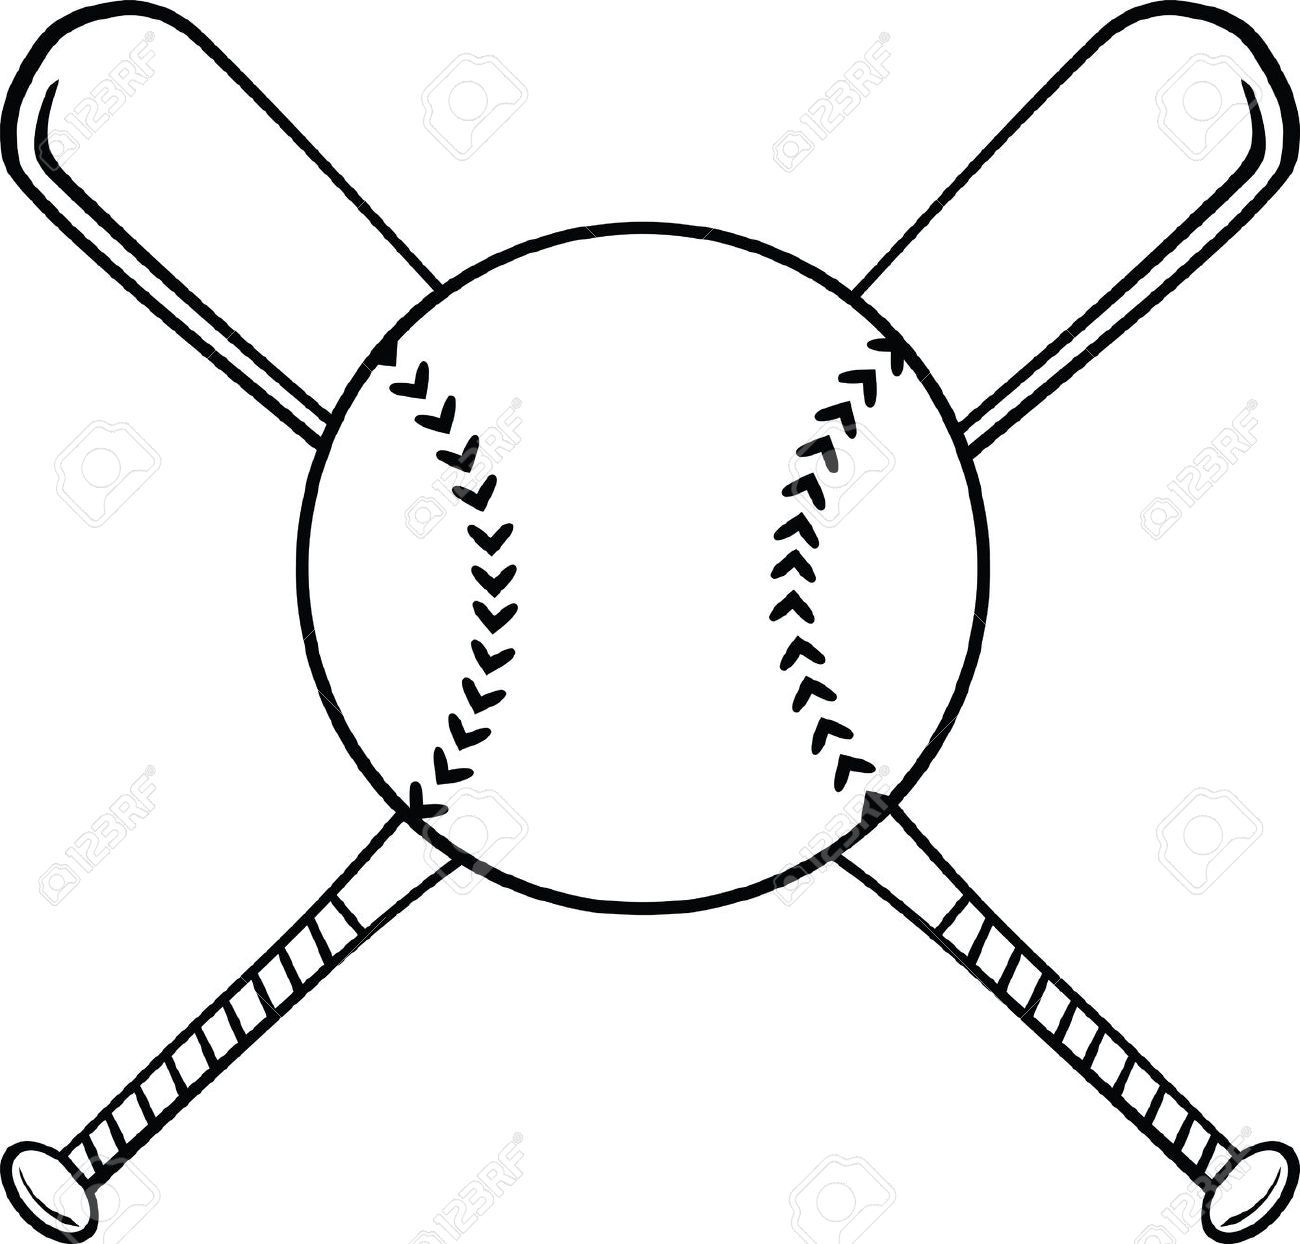 1300x1244 Softball Ball And Bat Clipart